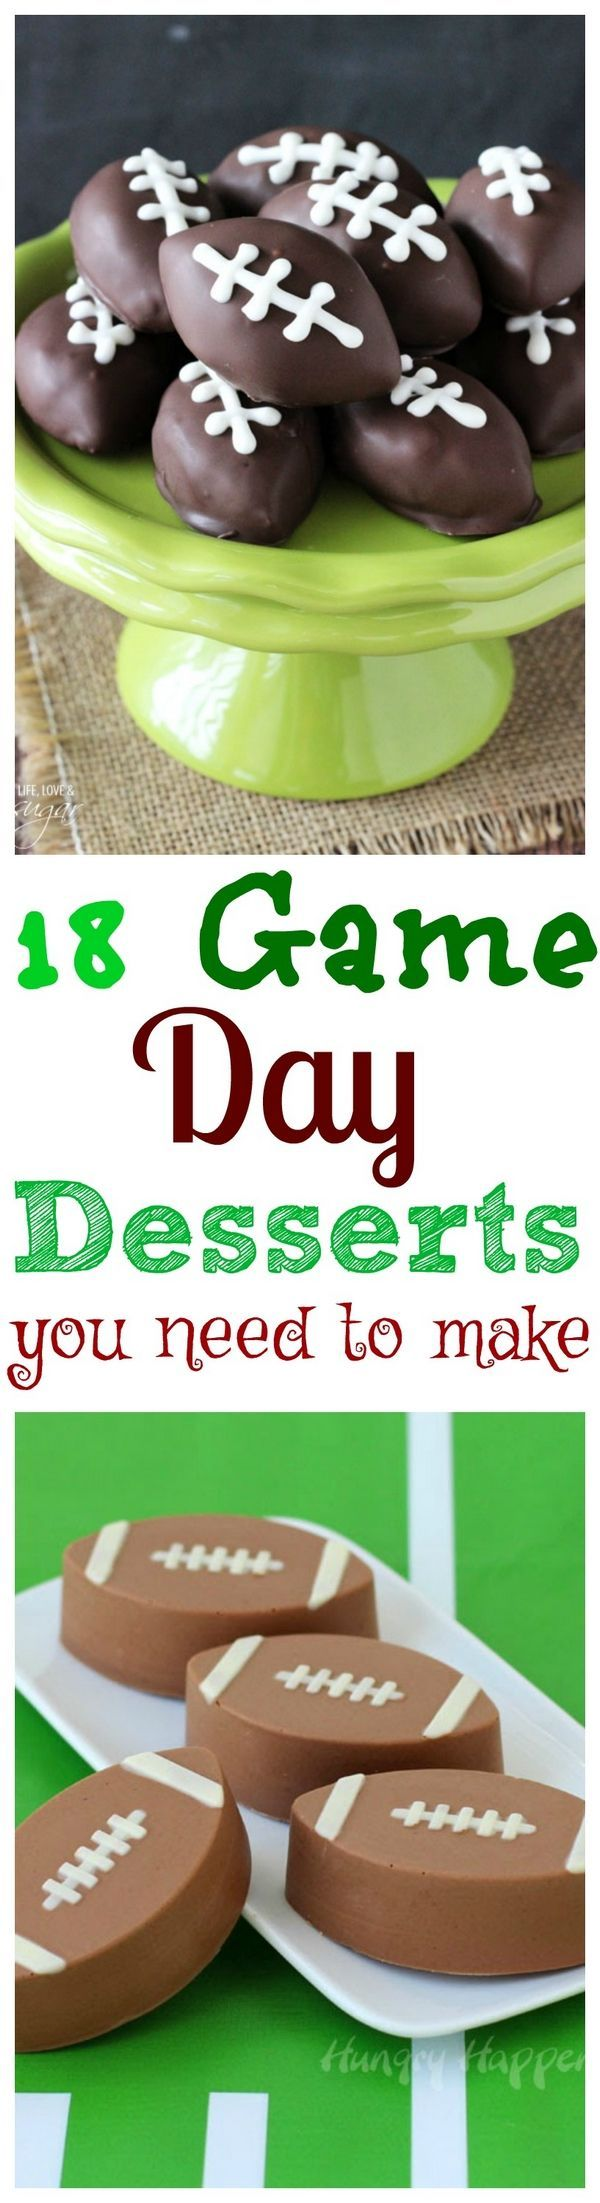 18 Game Day Desserts that are so cute, you will forget about Football.